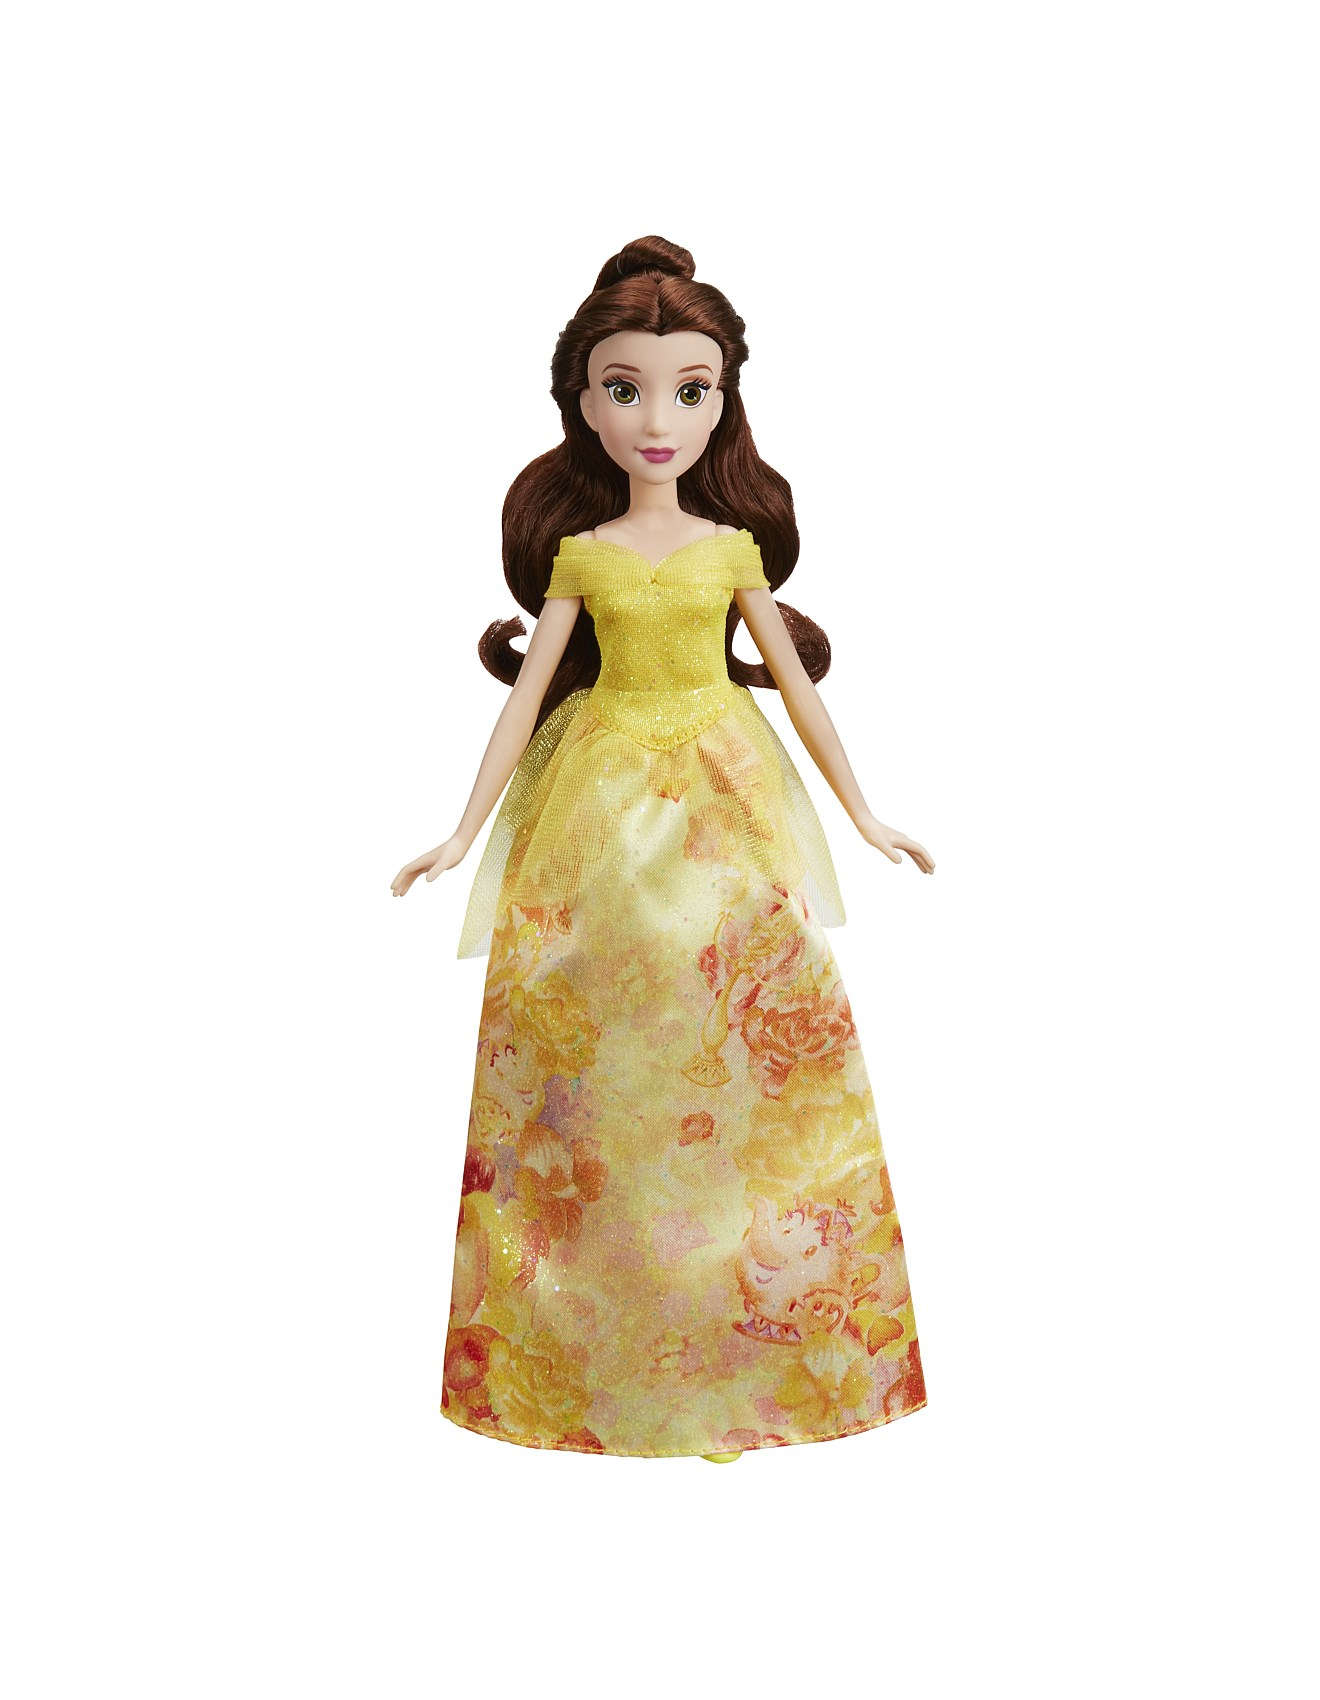 bc1837640279 Disney | Buy Disney Collection Online | David Jones - Disney Princess Belle  Royal Shimmer Fashion Doll